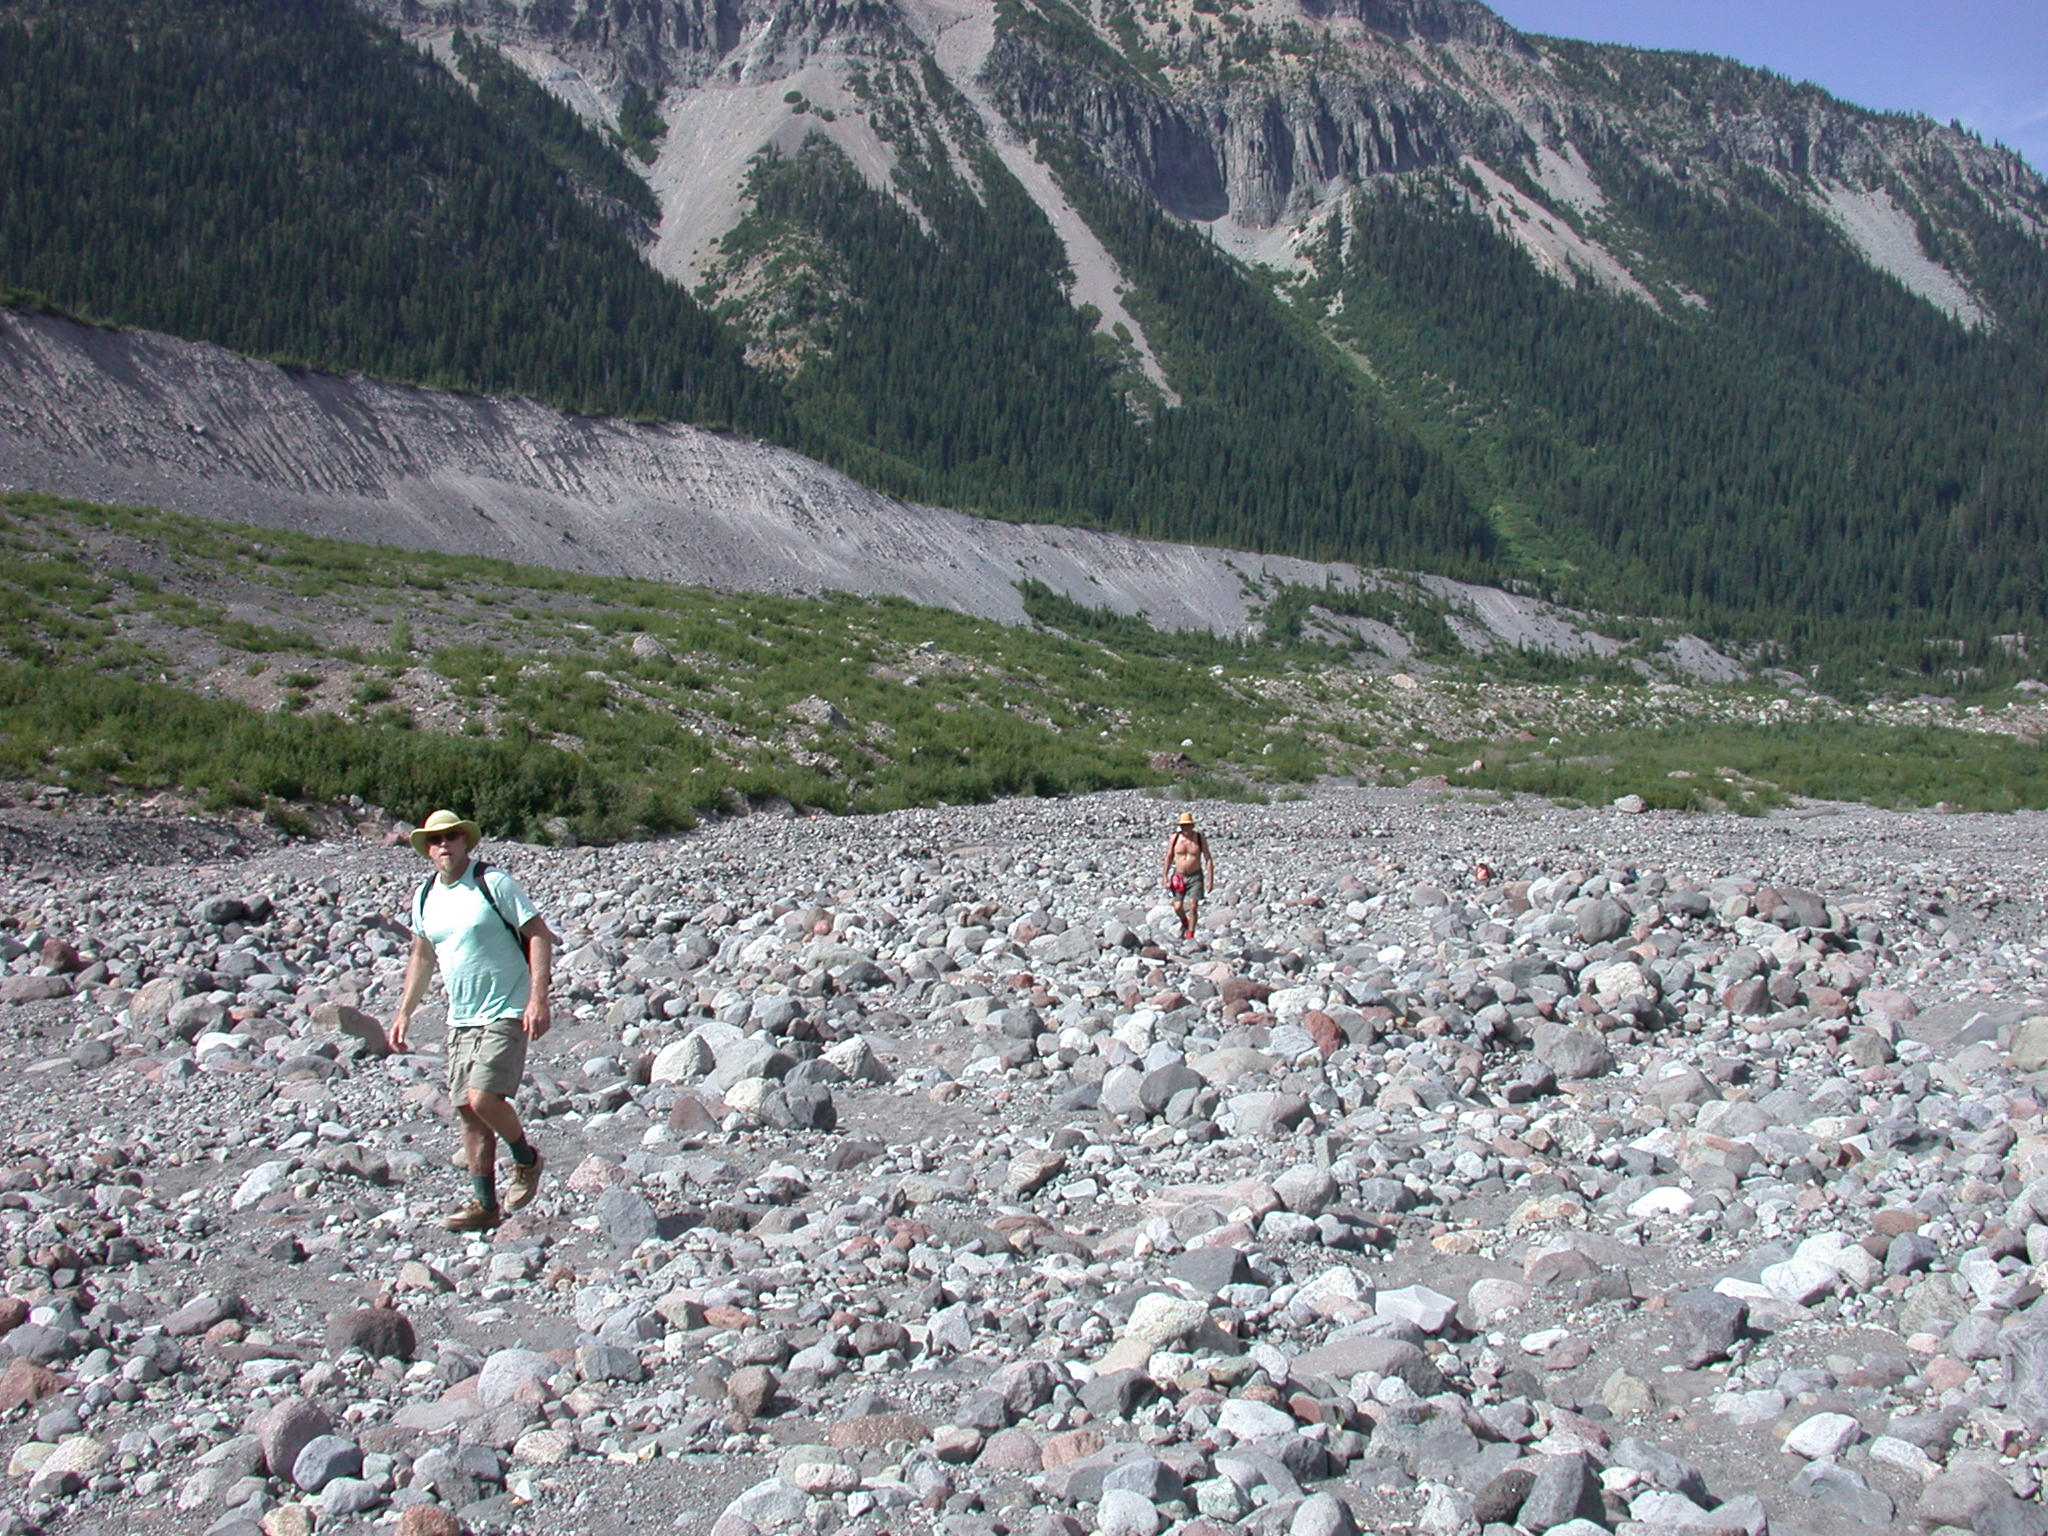 Dazzle and Tusk Traversing Rocky Glacial Valley on Mount Rainier